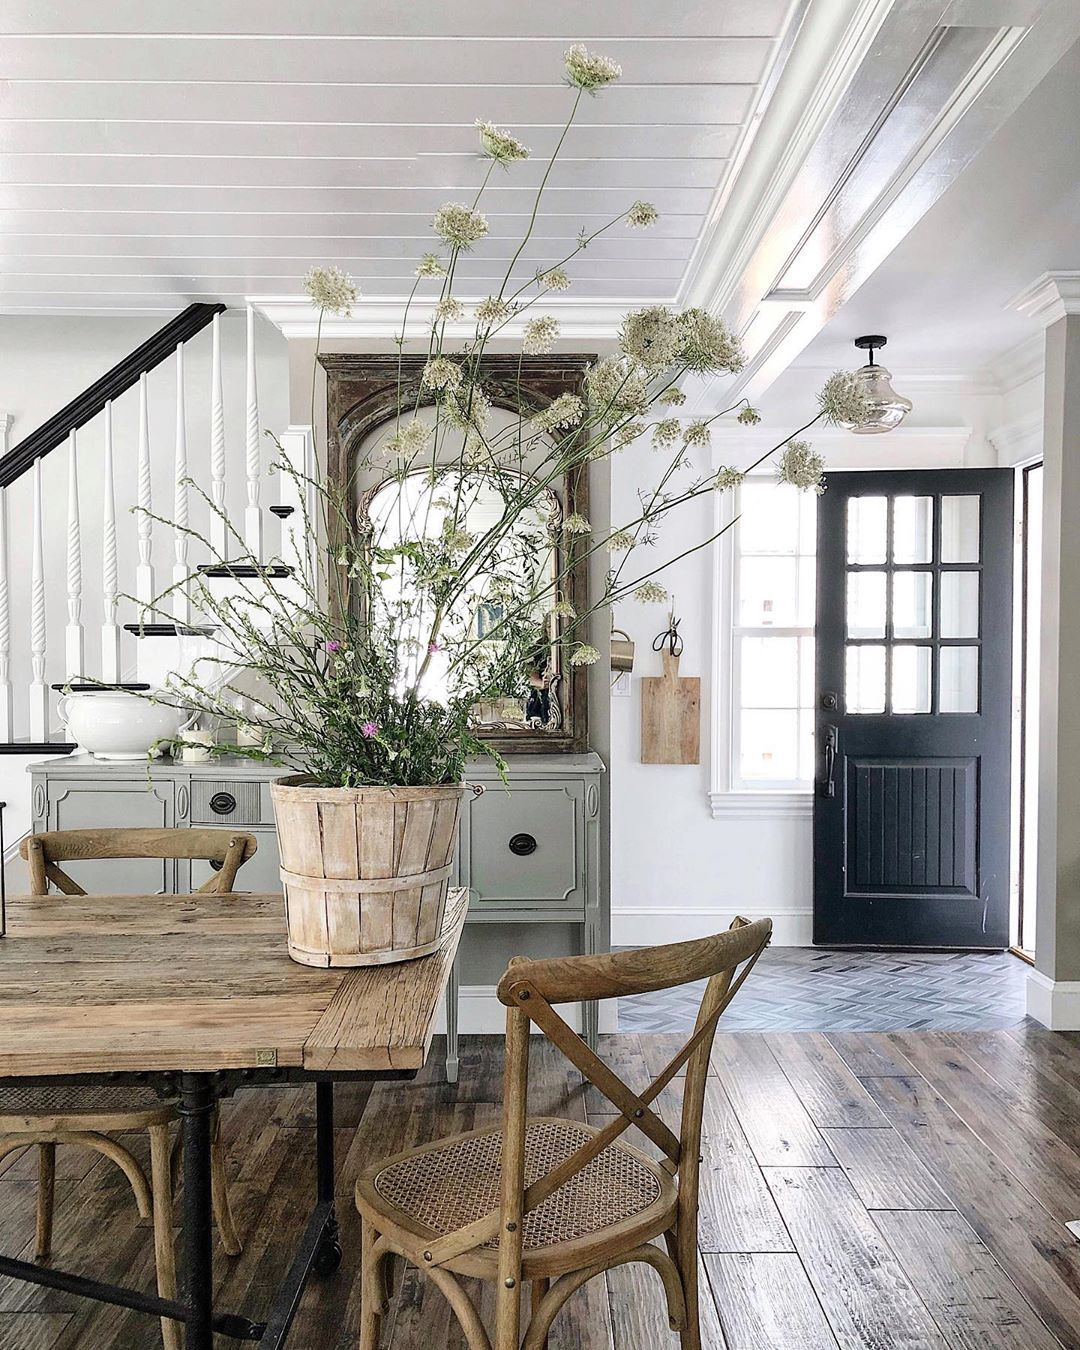 Ellen On Instagram Sunshine And Wildflowers Farmhouse Wildflowers Farm Modern Farmhouse Interiors Farmhouse Interior Modern Farmhouse Interior Design